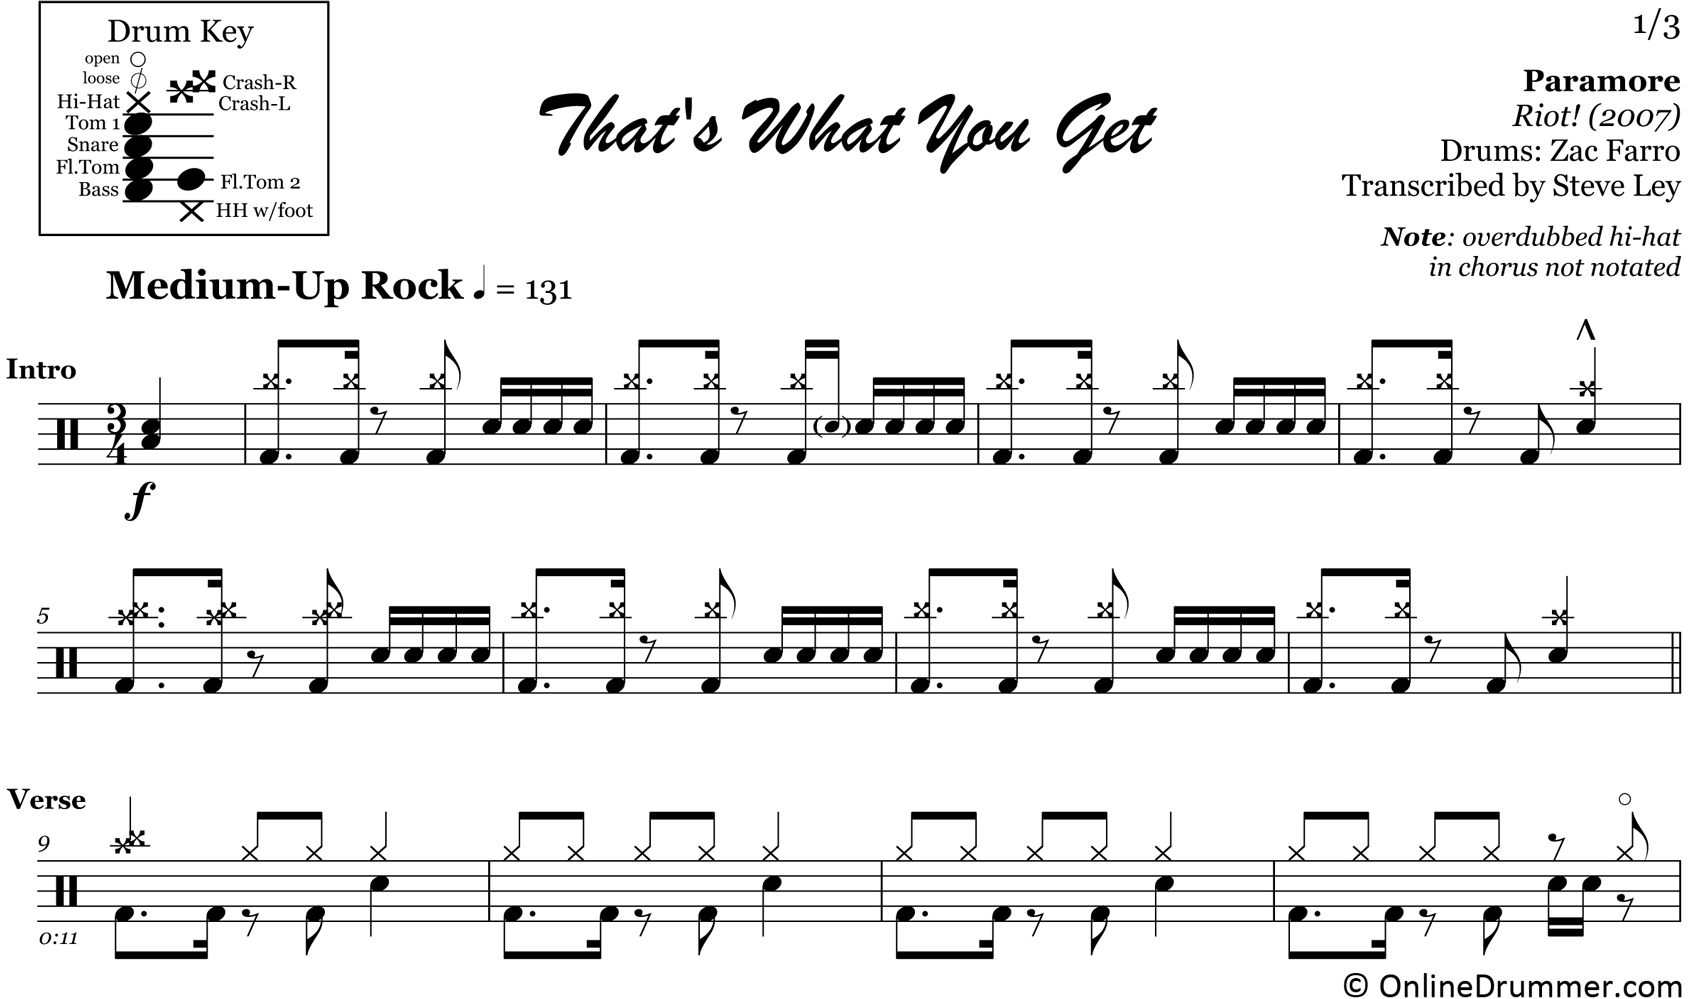 That's What You Get - Paramore Drum Sheet Music